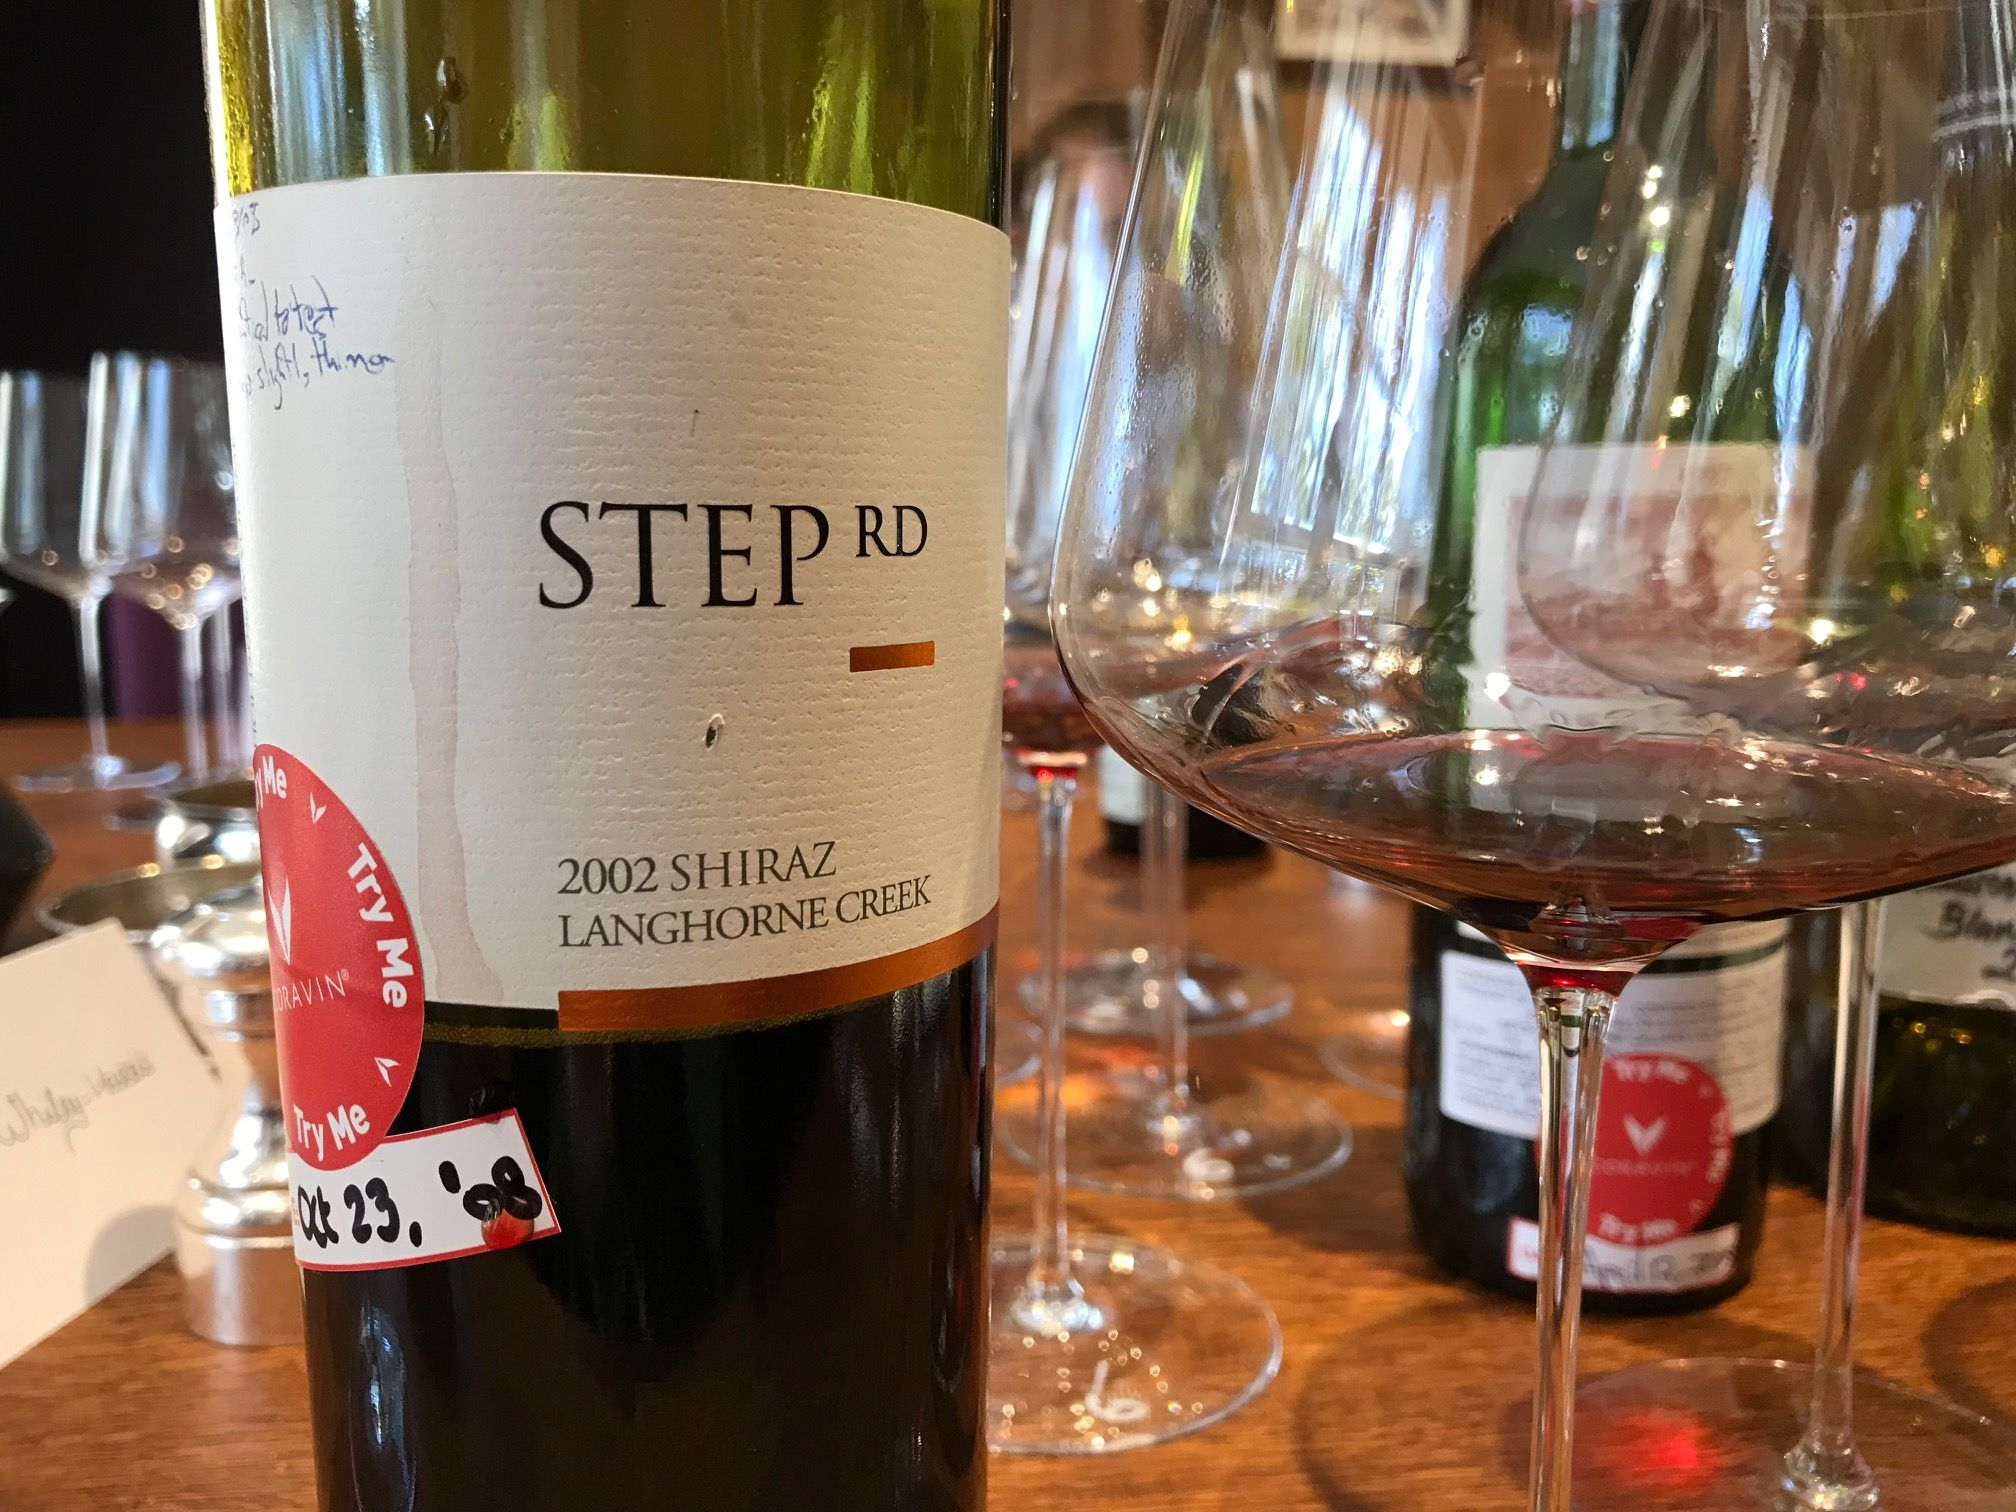 Step RD Langhorne Creek Shiraz